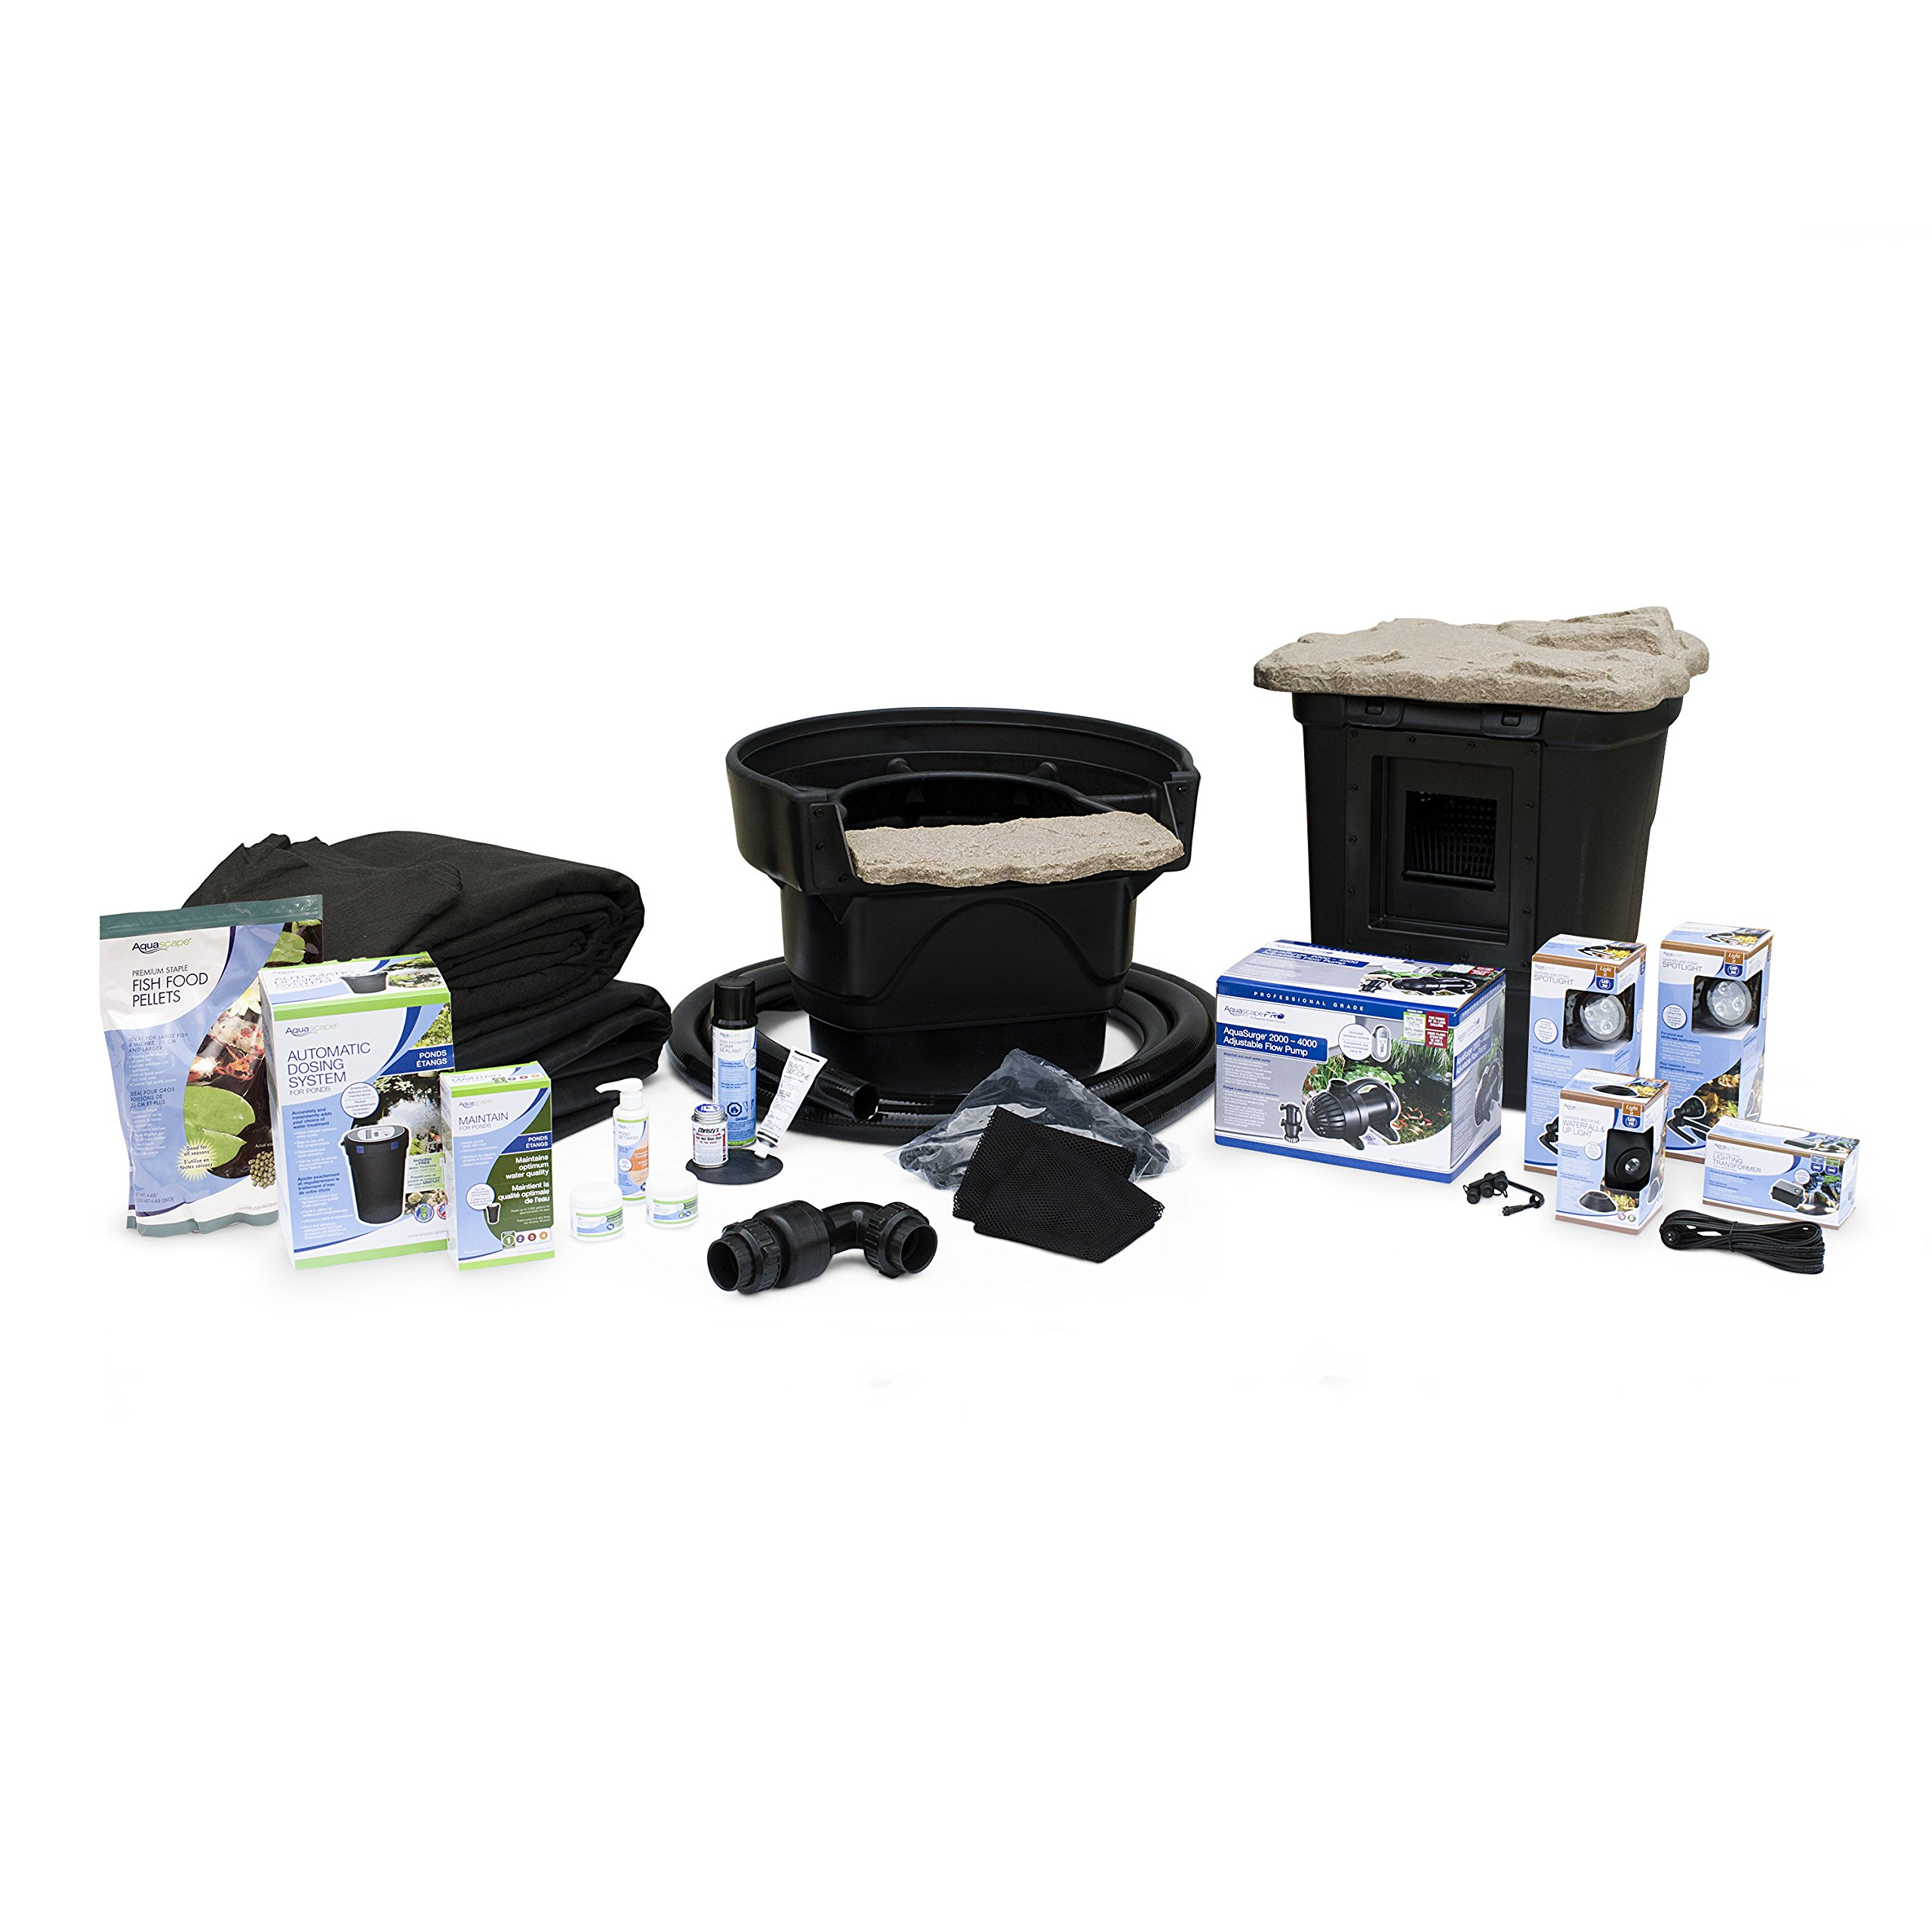 Aquascape Complete Pond Kit 11 Feet x 16 Feet |Medium| AquaSurgePRO 2000-4000 Pump